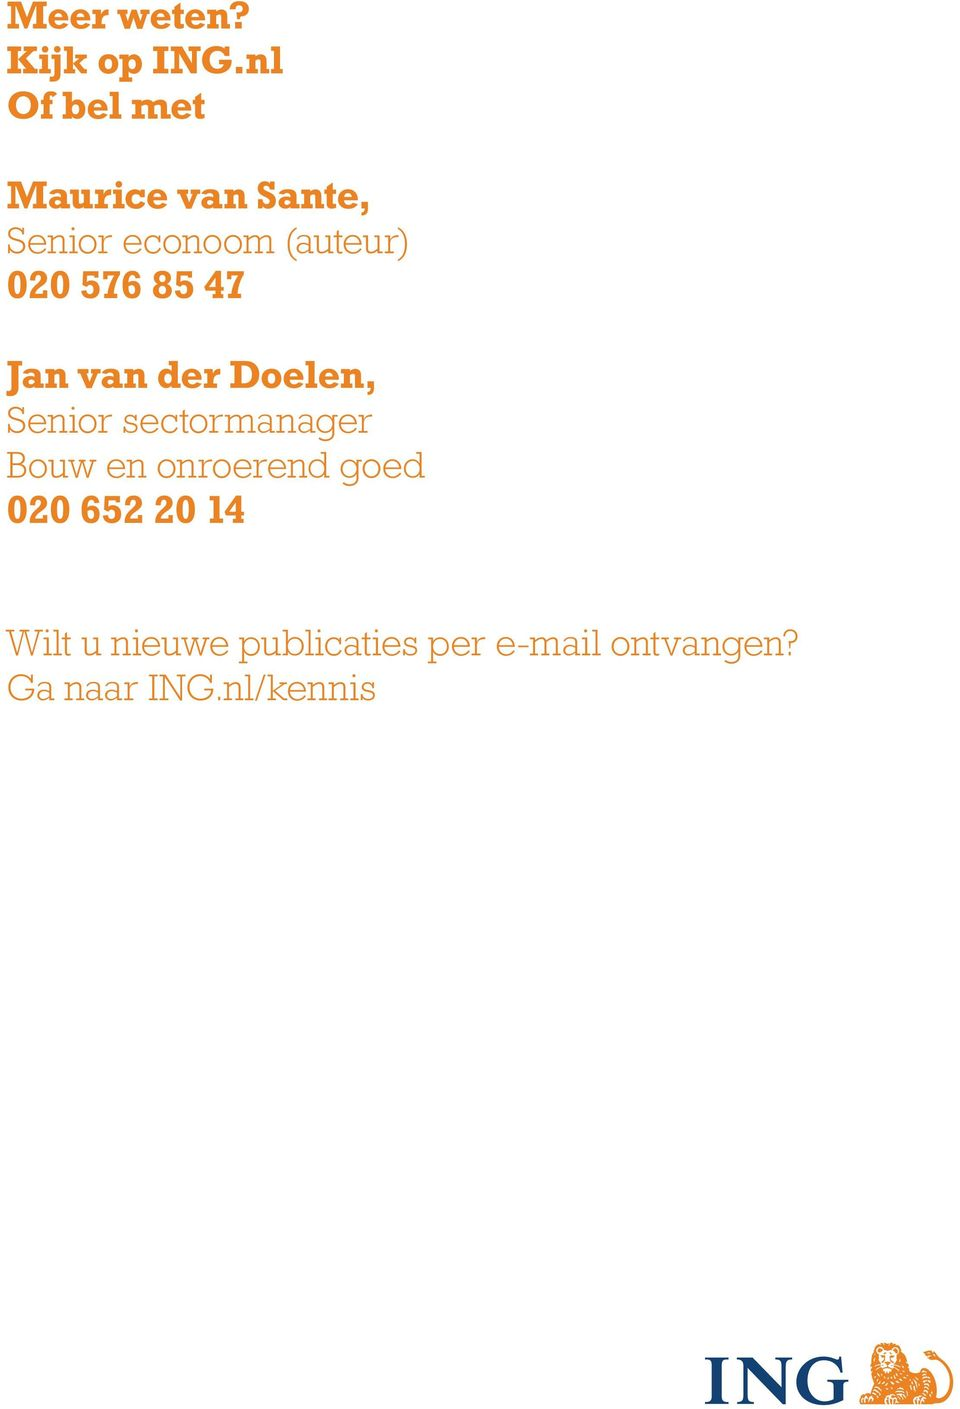 020 576 85 47 Jan van der Doelen, Senior sectormanager Bouw